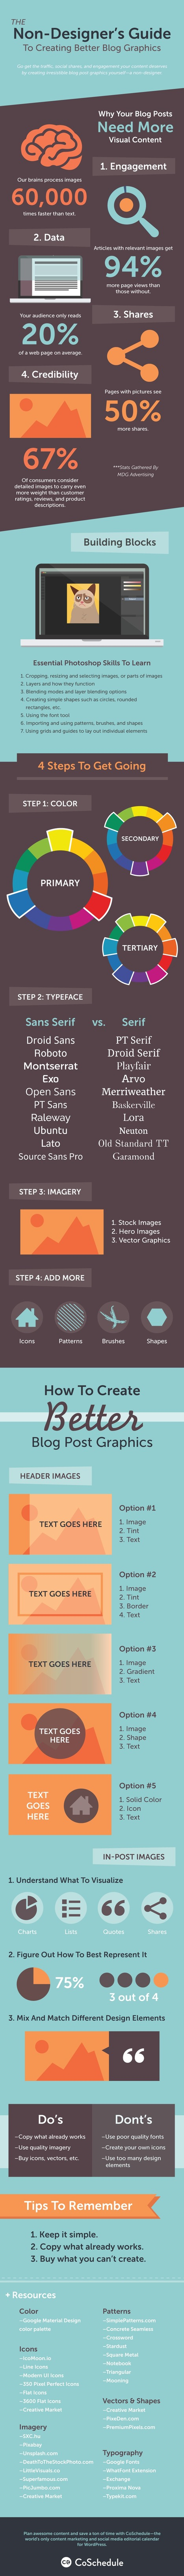 The Non-Designer's Guide to Creating Better Blog Graphics #Infographic | social media | Scoop.it